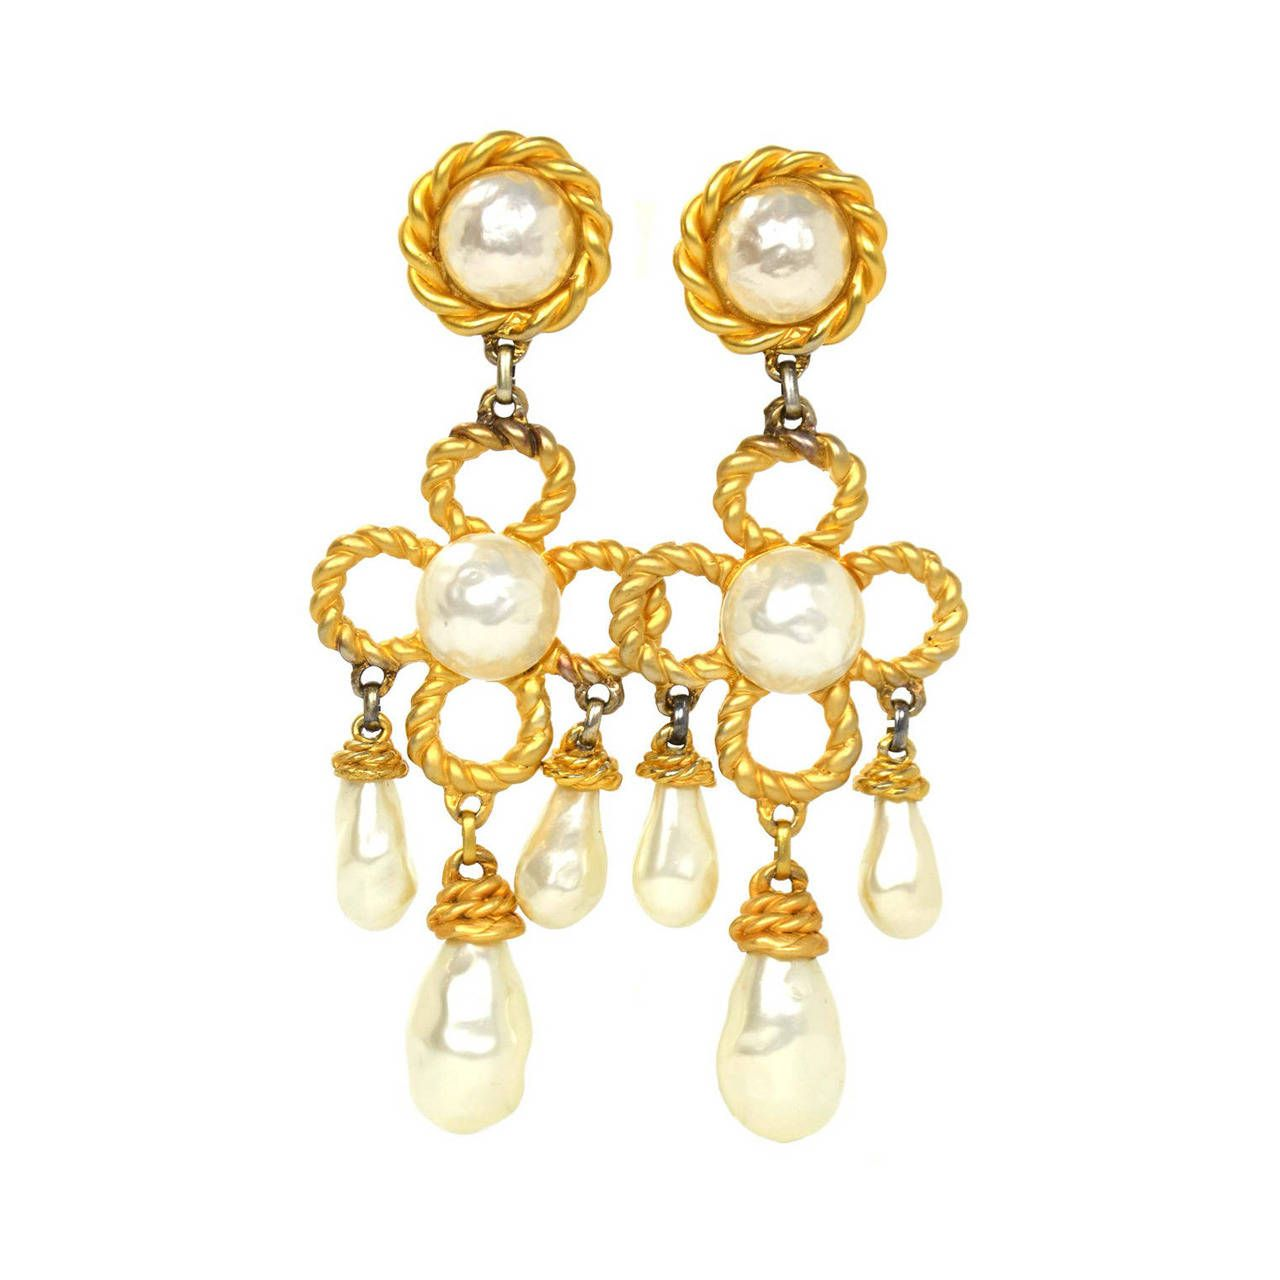 Chanel vintage 1970s 1980s large pearl and gold chandelier earrings chanel vintage 1970s 1980s large pearl and gold chandelier earrings gold chandelier earrings chandelier earrings and 1980s arubaitofo Gallery